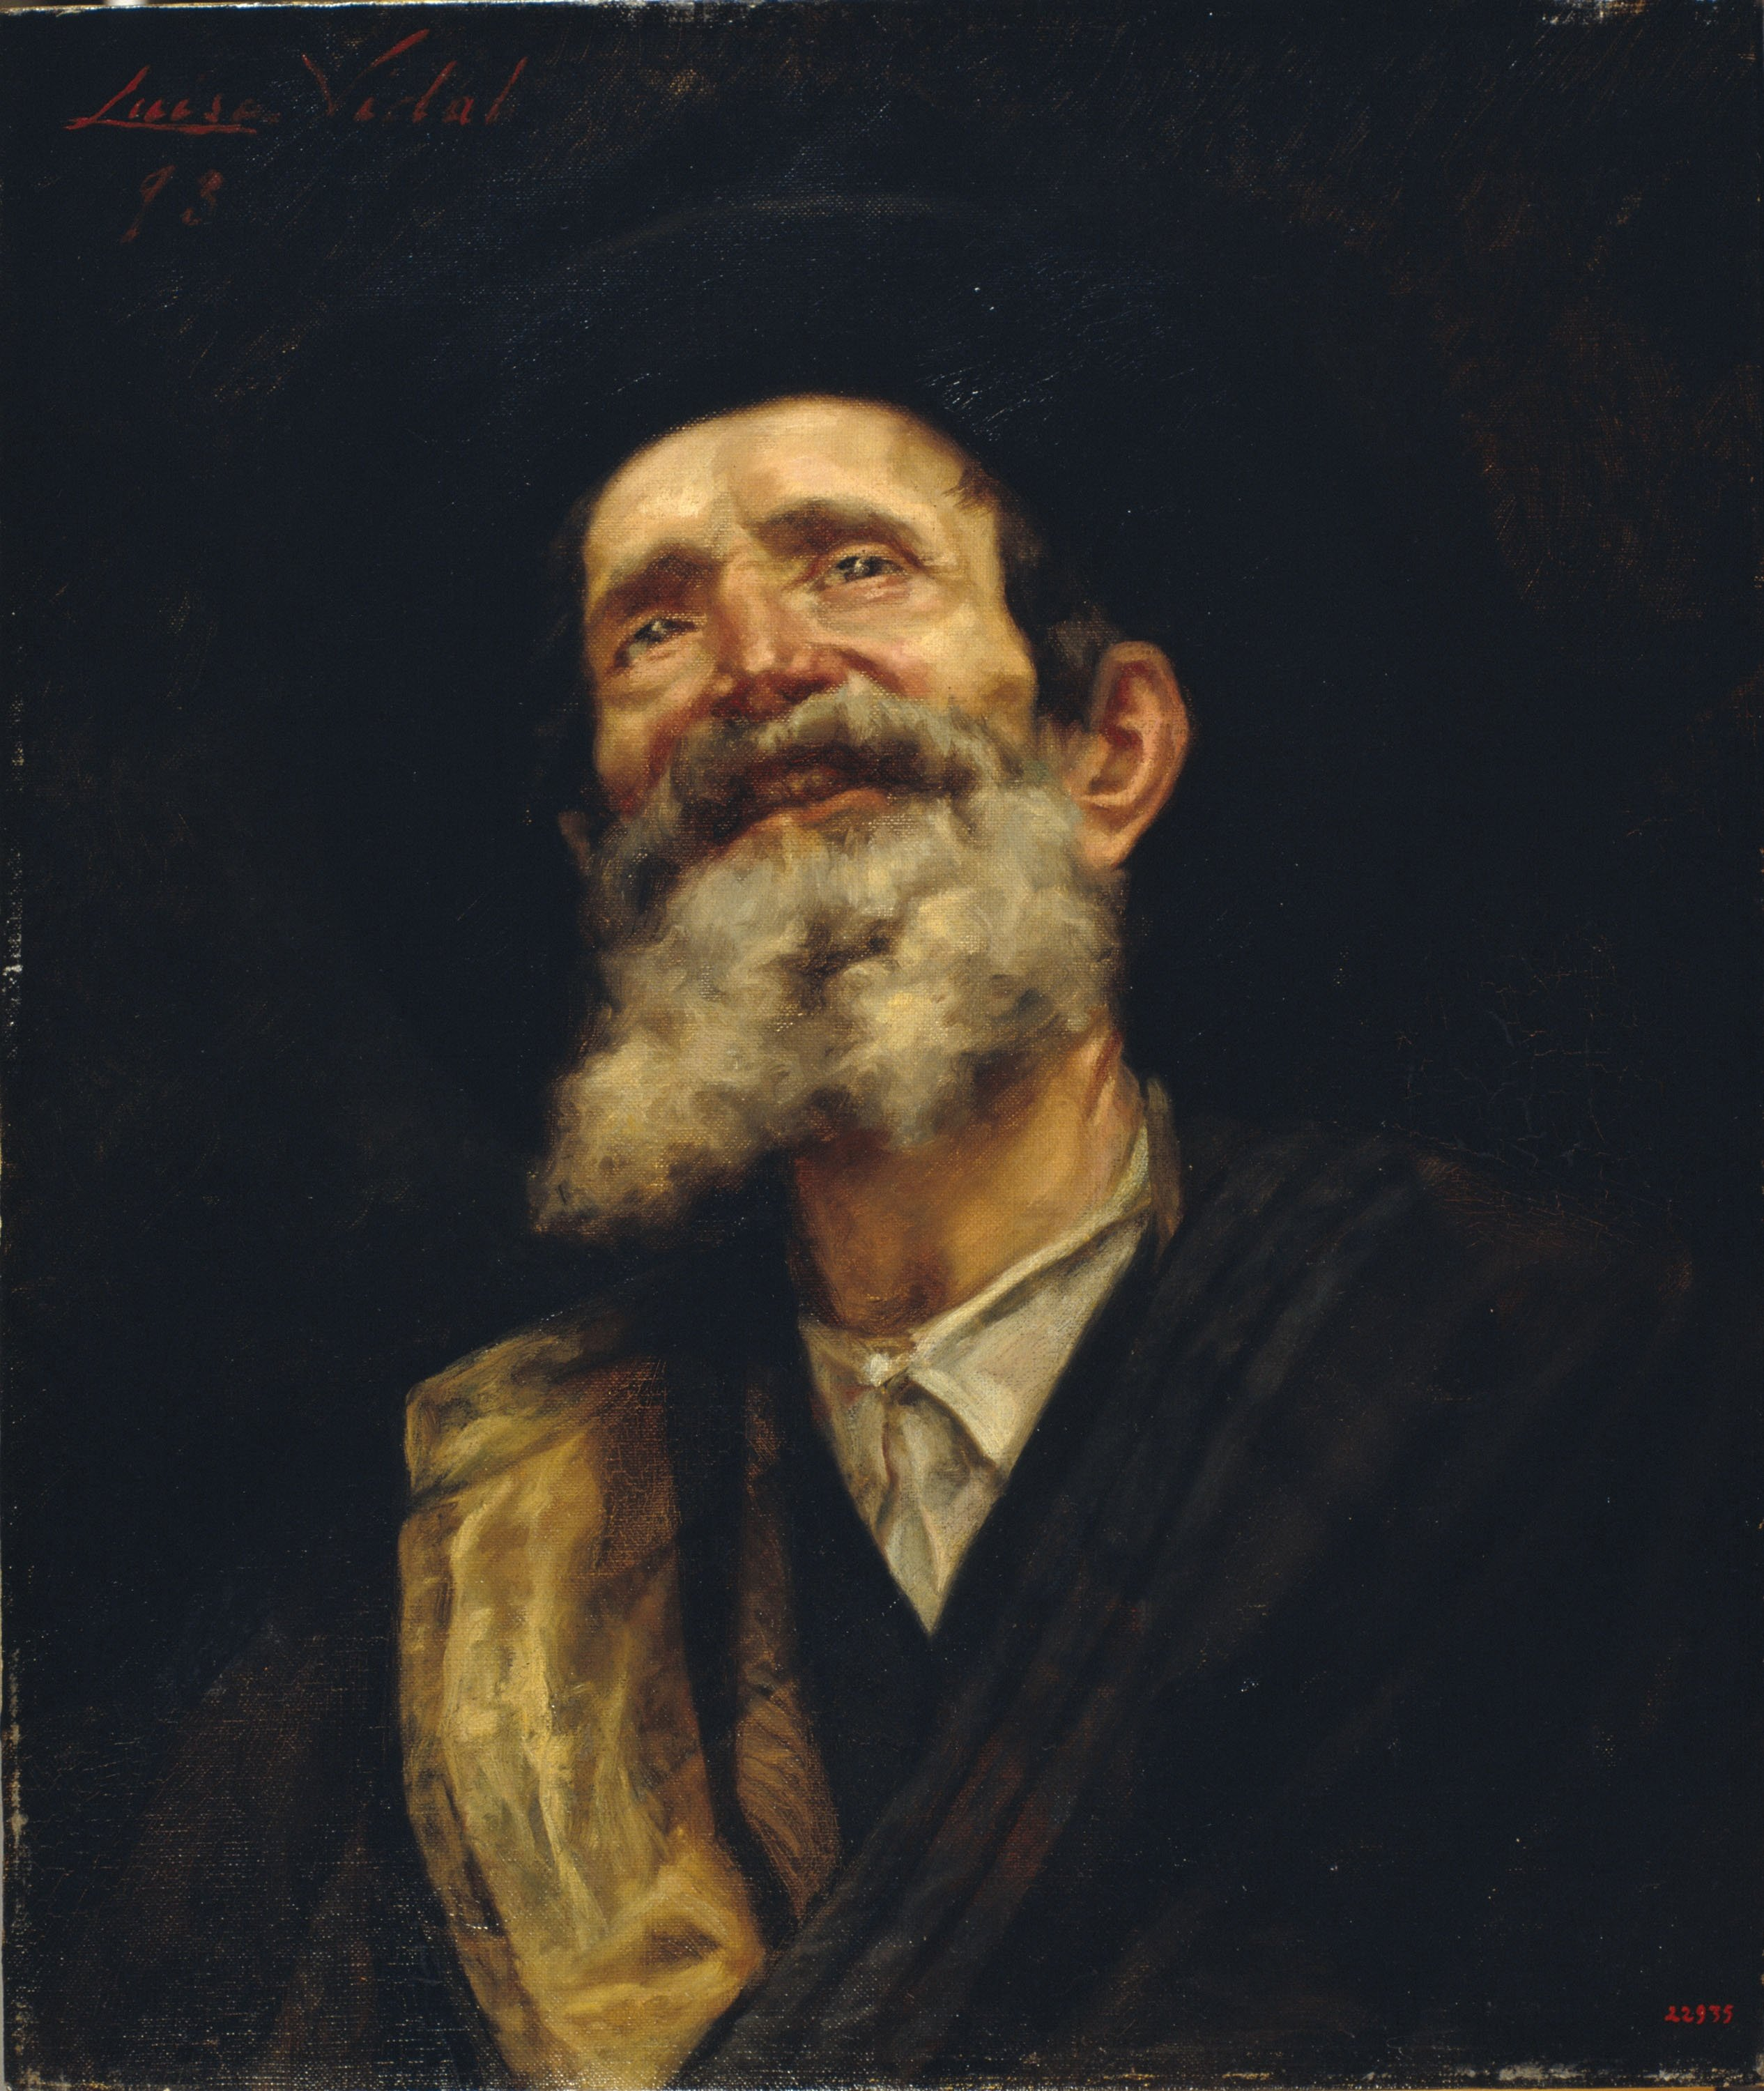 Lluïsa Vidal - Portrait of an Old Man - 1893